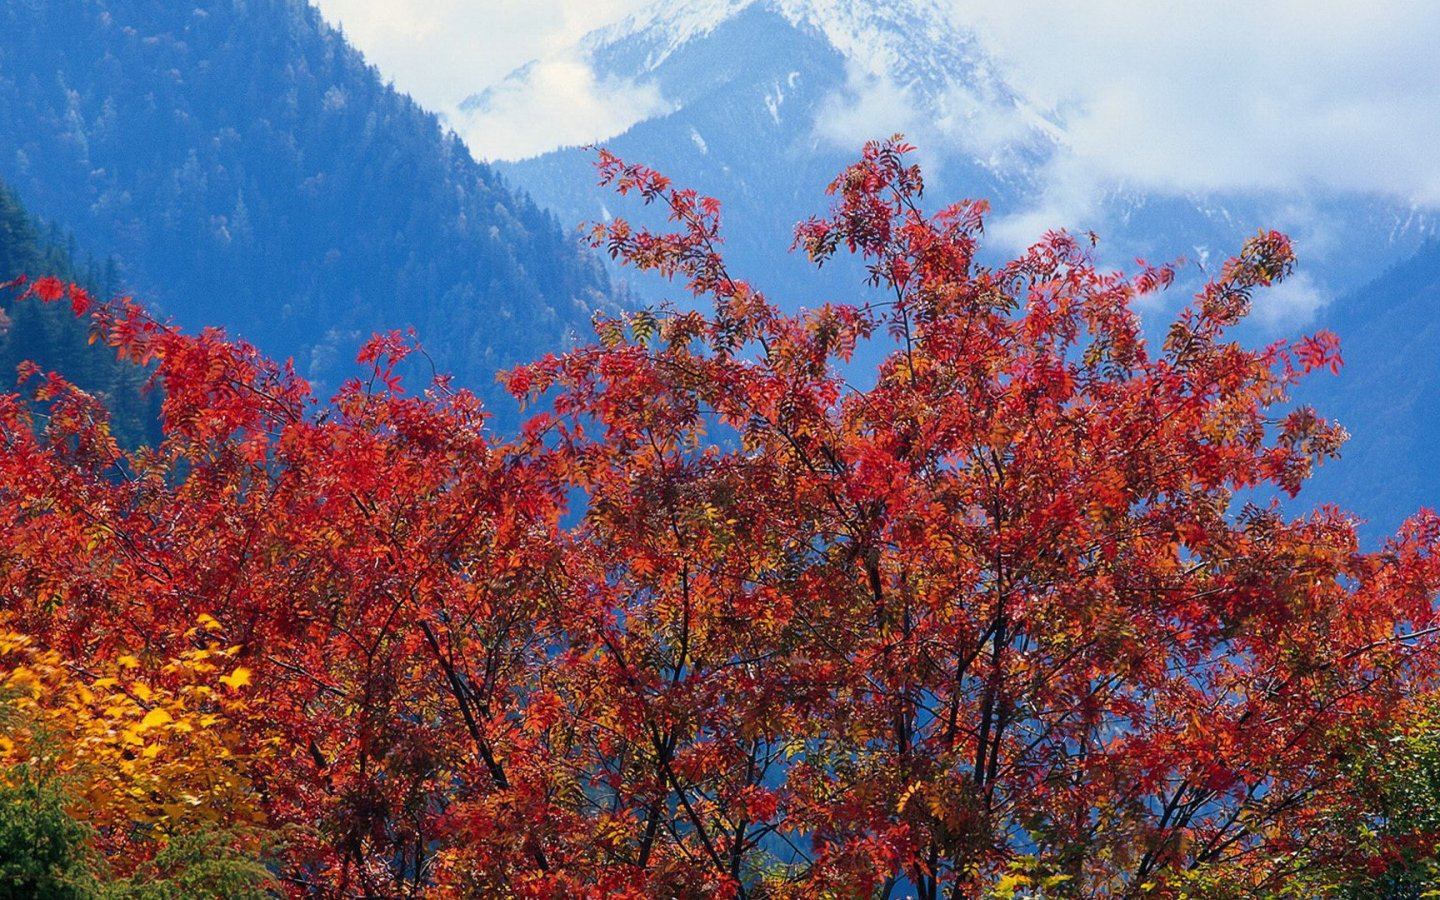 Tree Forest Autumn Yellow Leaf Red Leaf Snow Mountain